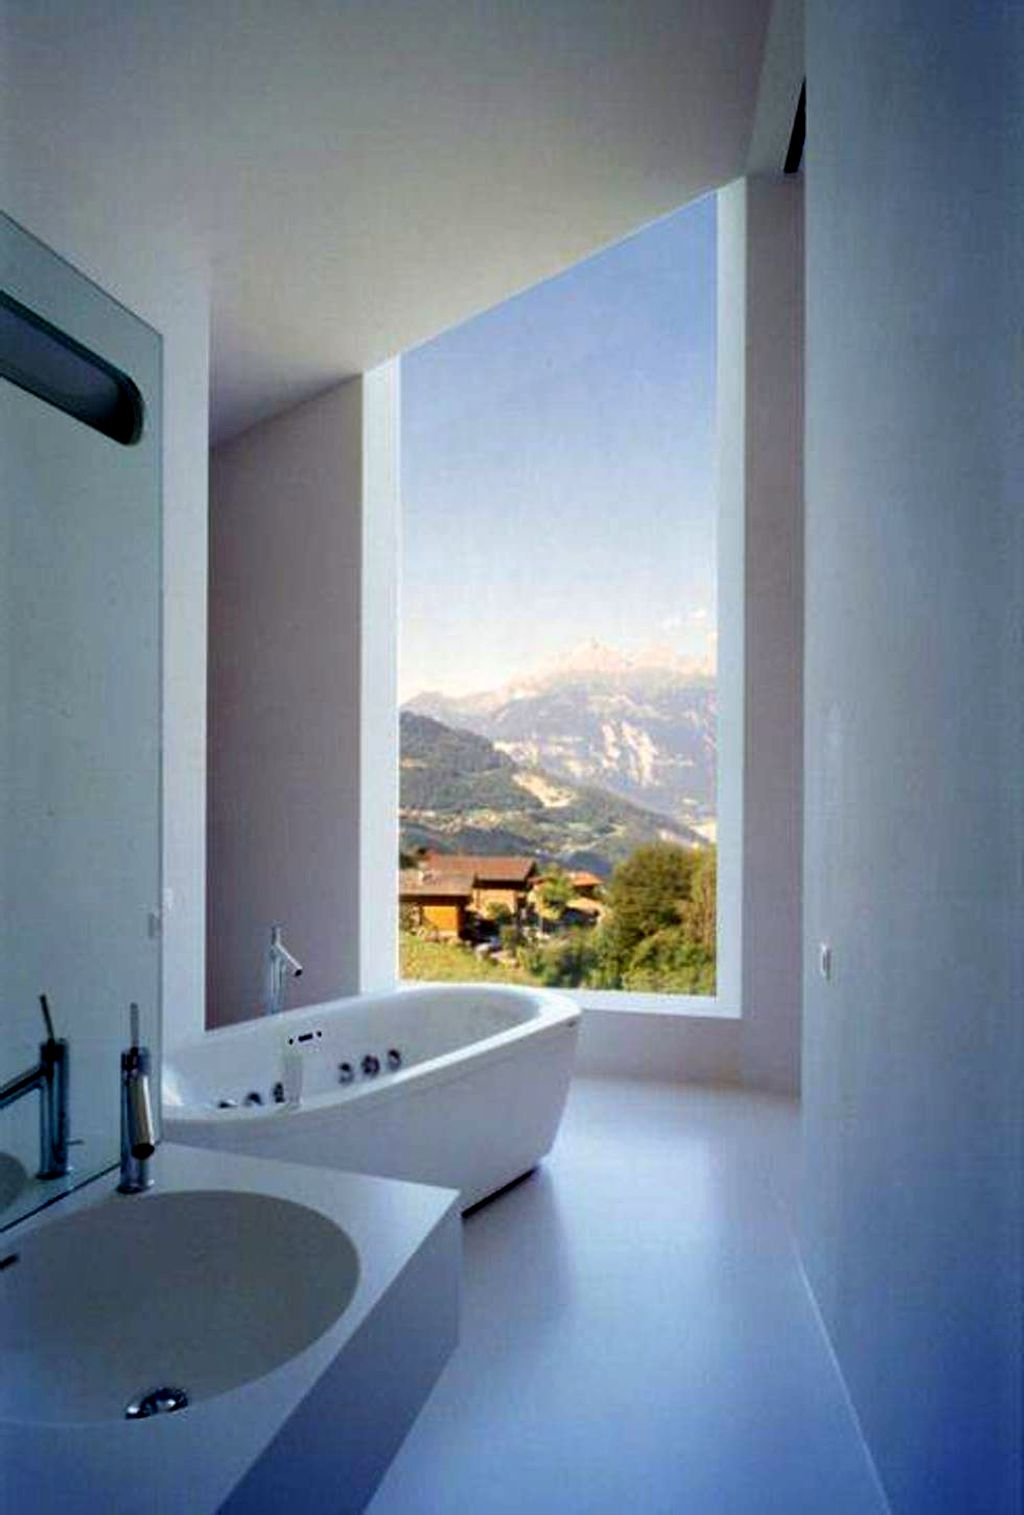 cool-modern-bathrooms-for-small-apartments Cool Small Kitchen Wall Ideas on cool kitchen crafts, cool room wall decorations, cool kitchen table ideas, cool kitchen decorating ideas, cool kitchen paint, cool kitchen furniture, cool living room ideas, cool kitchen roof ideas, cool kitchen tile ideas, cool kitchen ceiling ideas, cool wood paneling ideas, cool kitchen design ideas, cool kitchen art, cool kitchen decor, cool kitchen wallpaper,